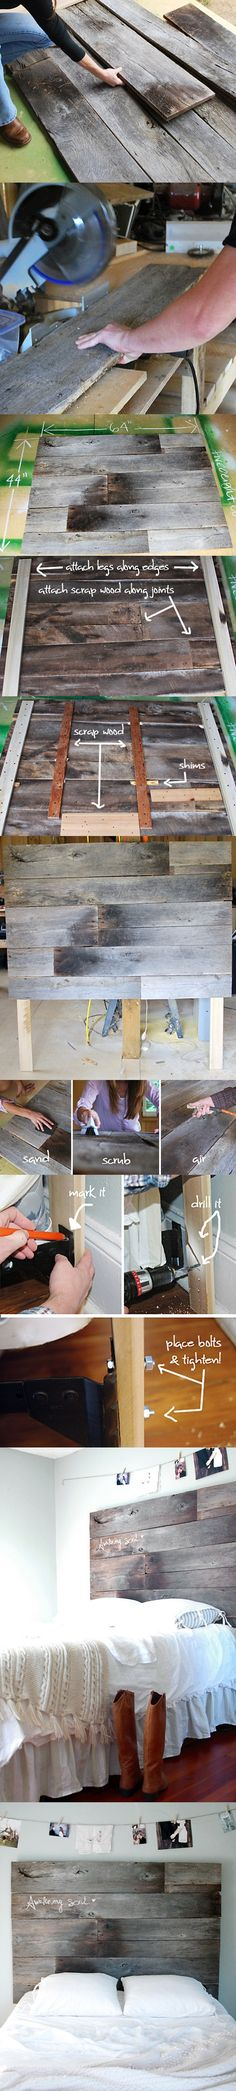 Homemade Headboard. posted a similar one but this has all the steps | fabuloushomeblog.comfabuloushomeblog.com